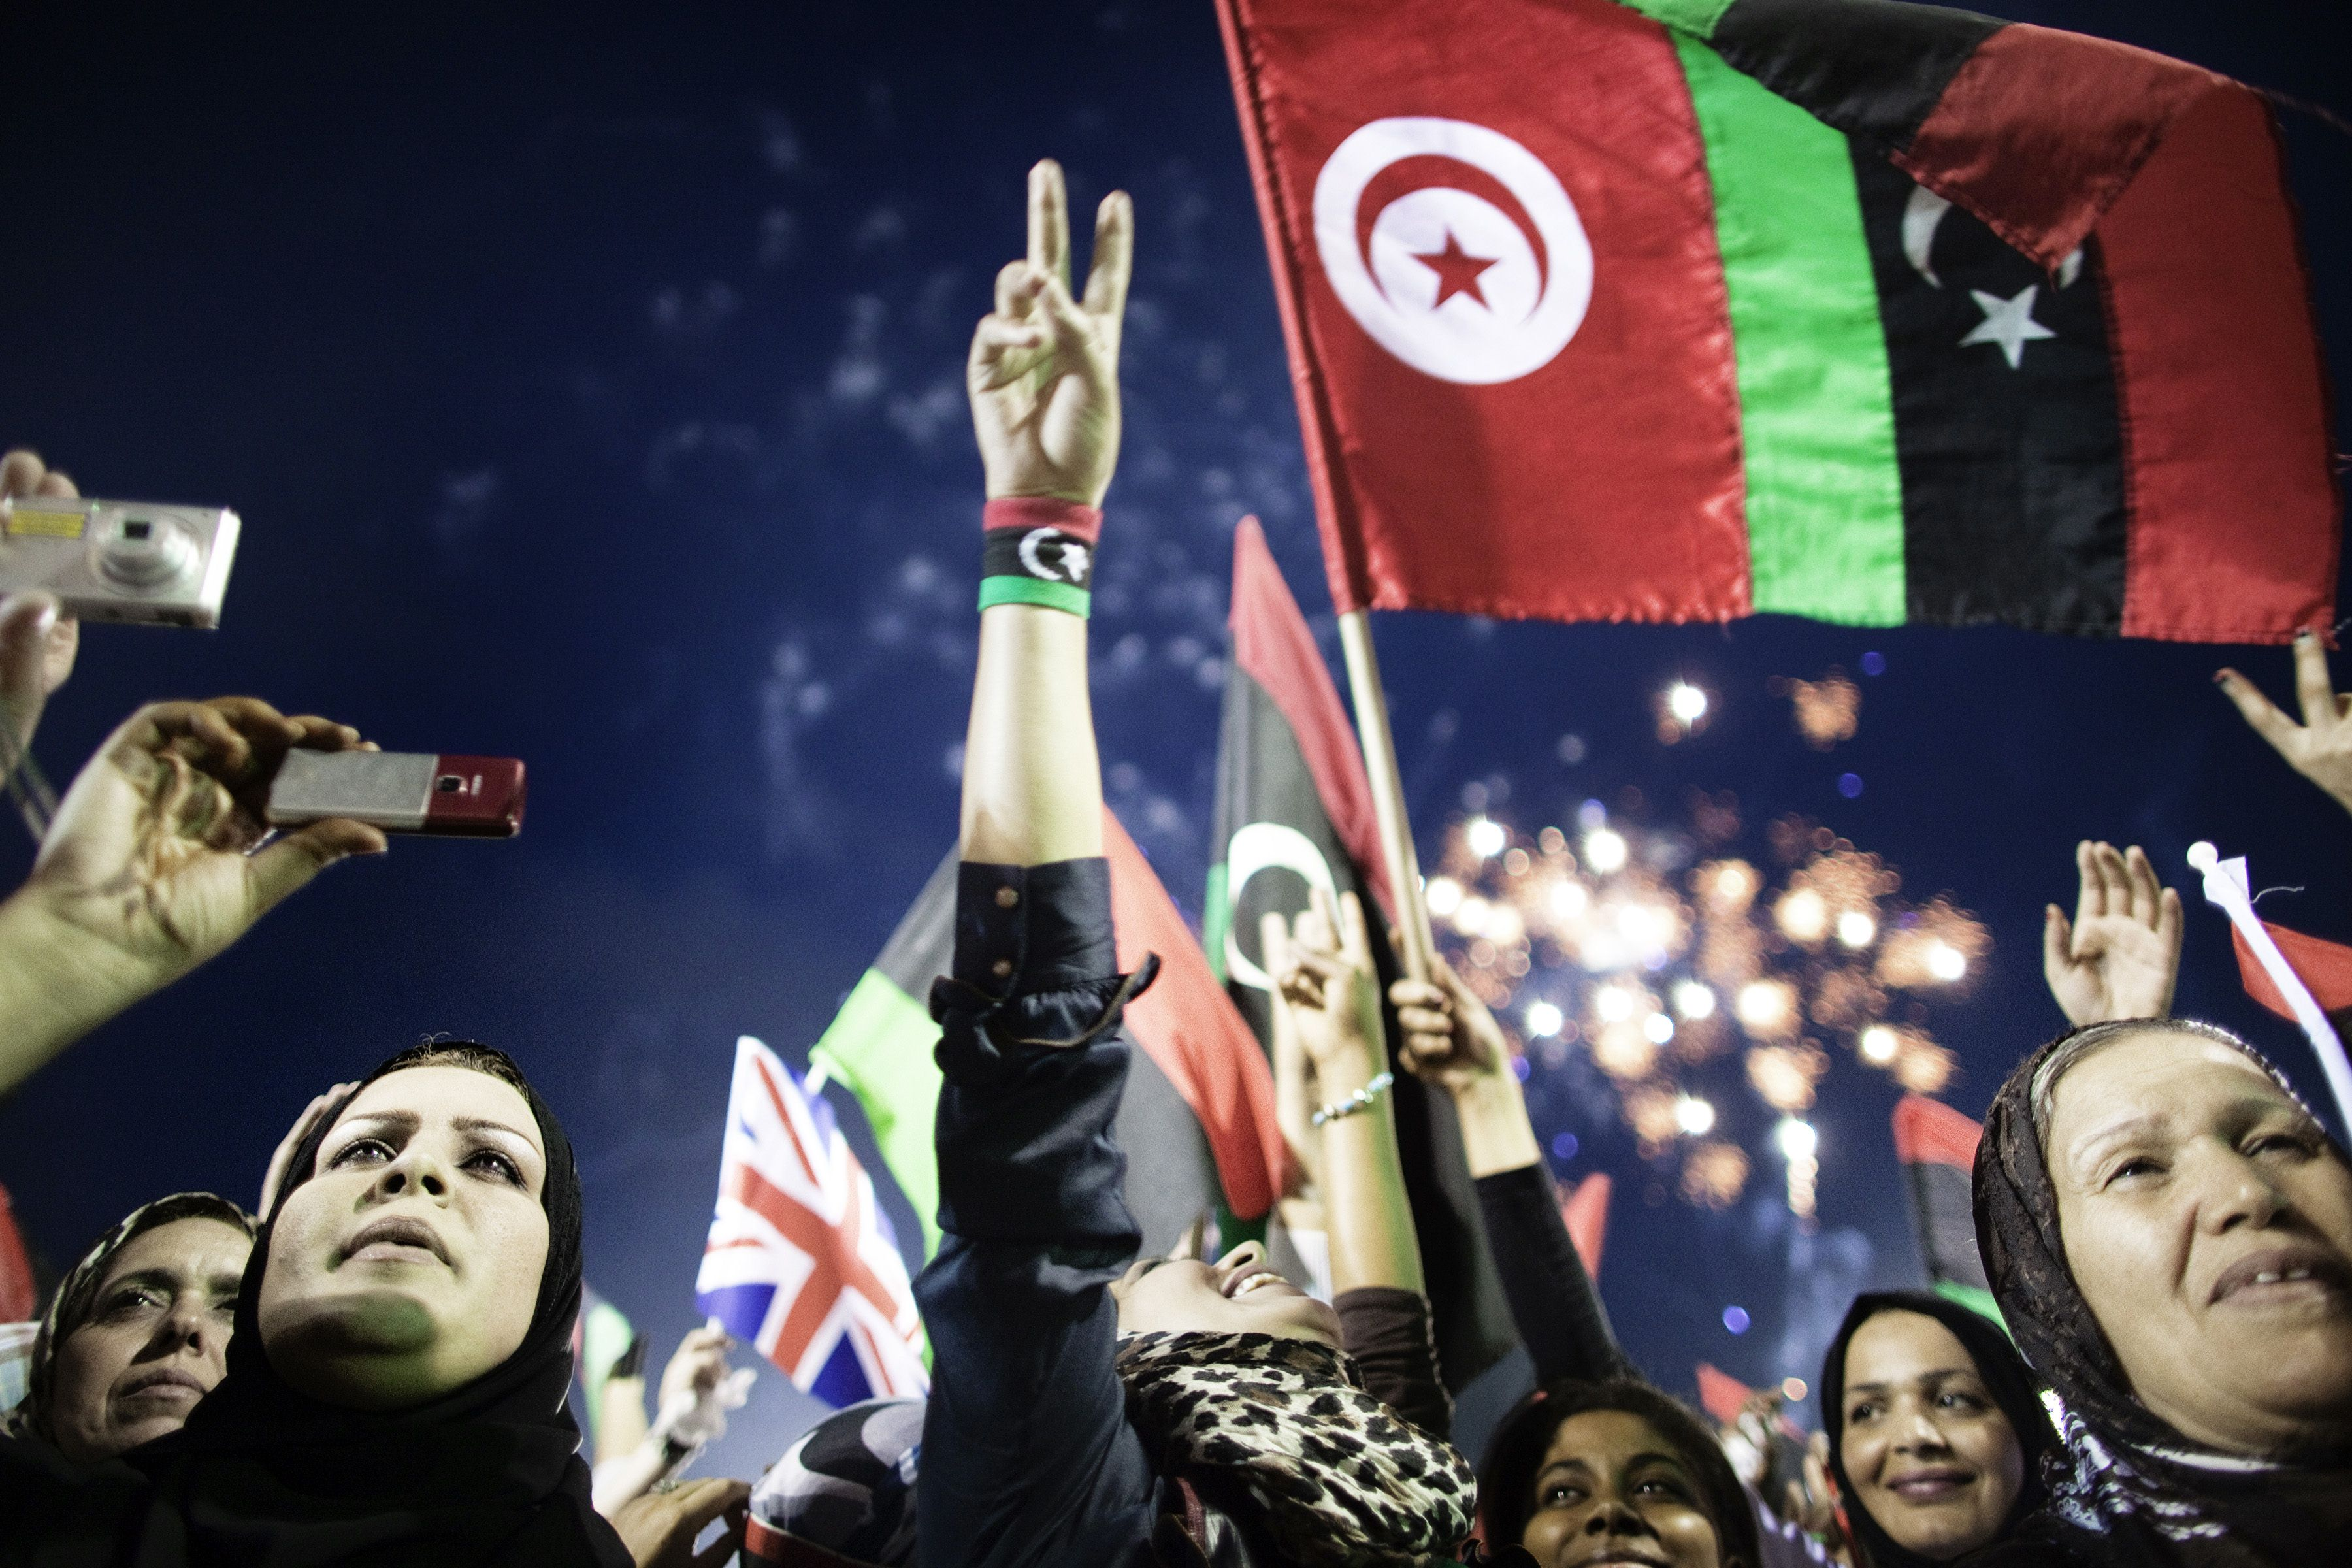 A picture taken on October 23, 2011 shows Libyans celebrating following the announcement of the liberation of the country in Martyr's Square in central Tripoli three days after ousted despot Moamer Kadhafi was captured and killed. As Libya prepares to commemorate three years since the uprising that ousted and killed long-time dictator Moamer Kadhafi on February 17, 2014, the country is haunted by a nightmare of lawlessness that has overshadowed people's dreams of a better life.   (AFP PHOTO/MARCO LONGARI)